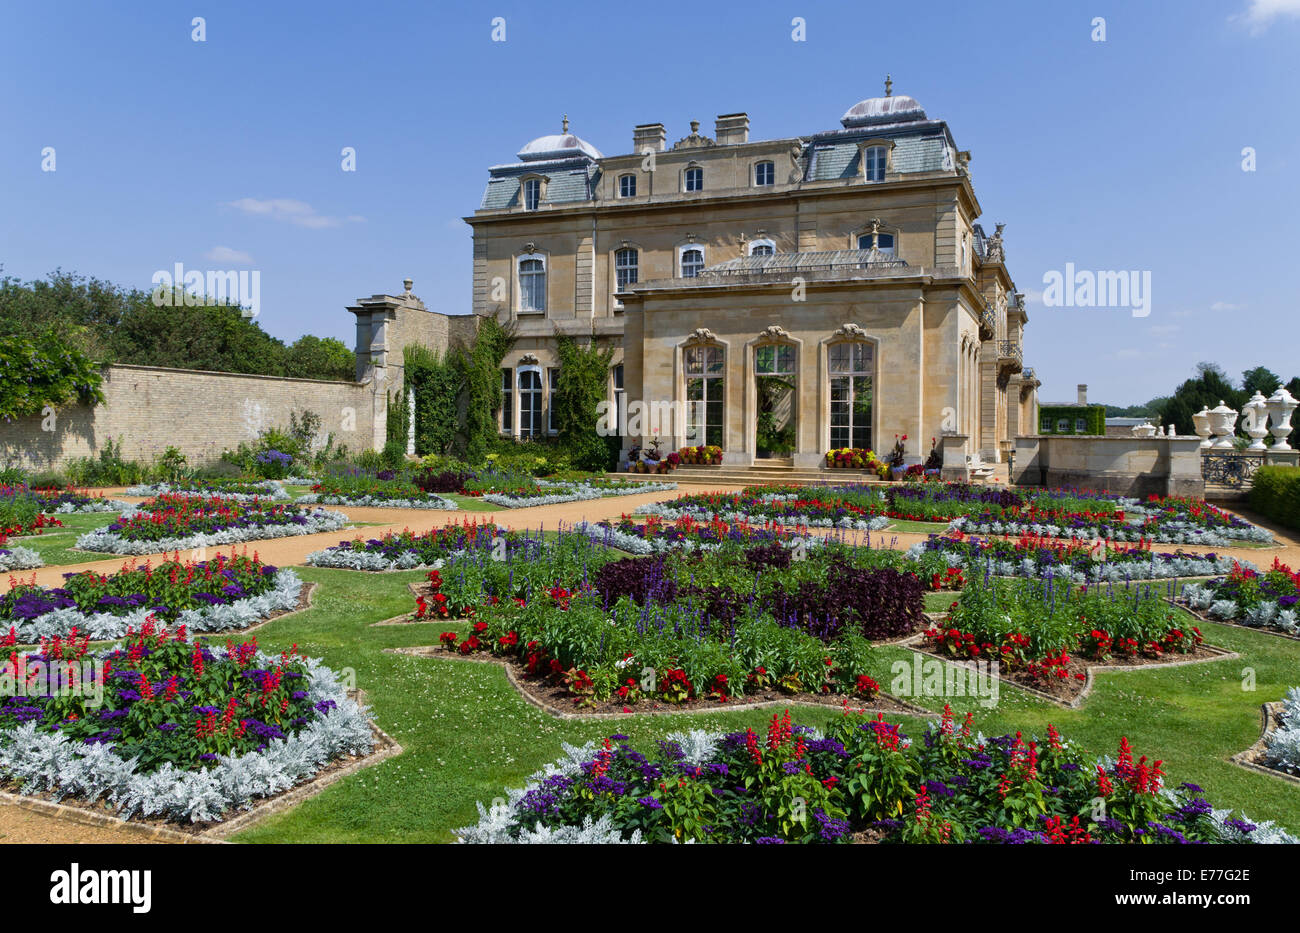 Italian Gardens At Wrest Park UK The Stately Home In Background